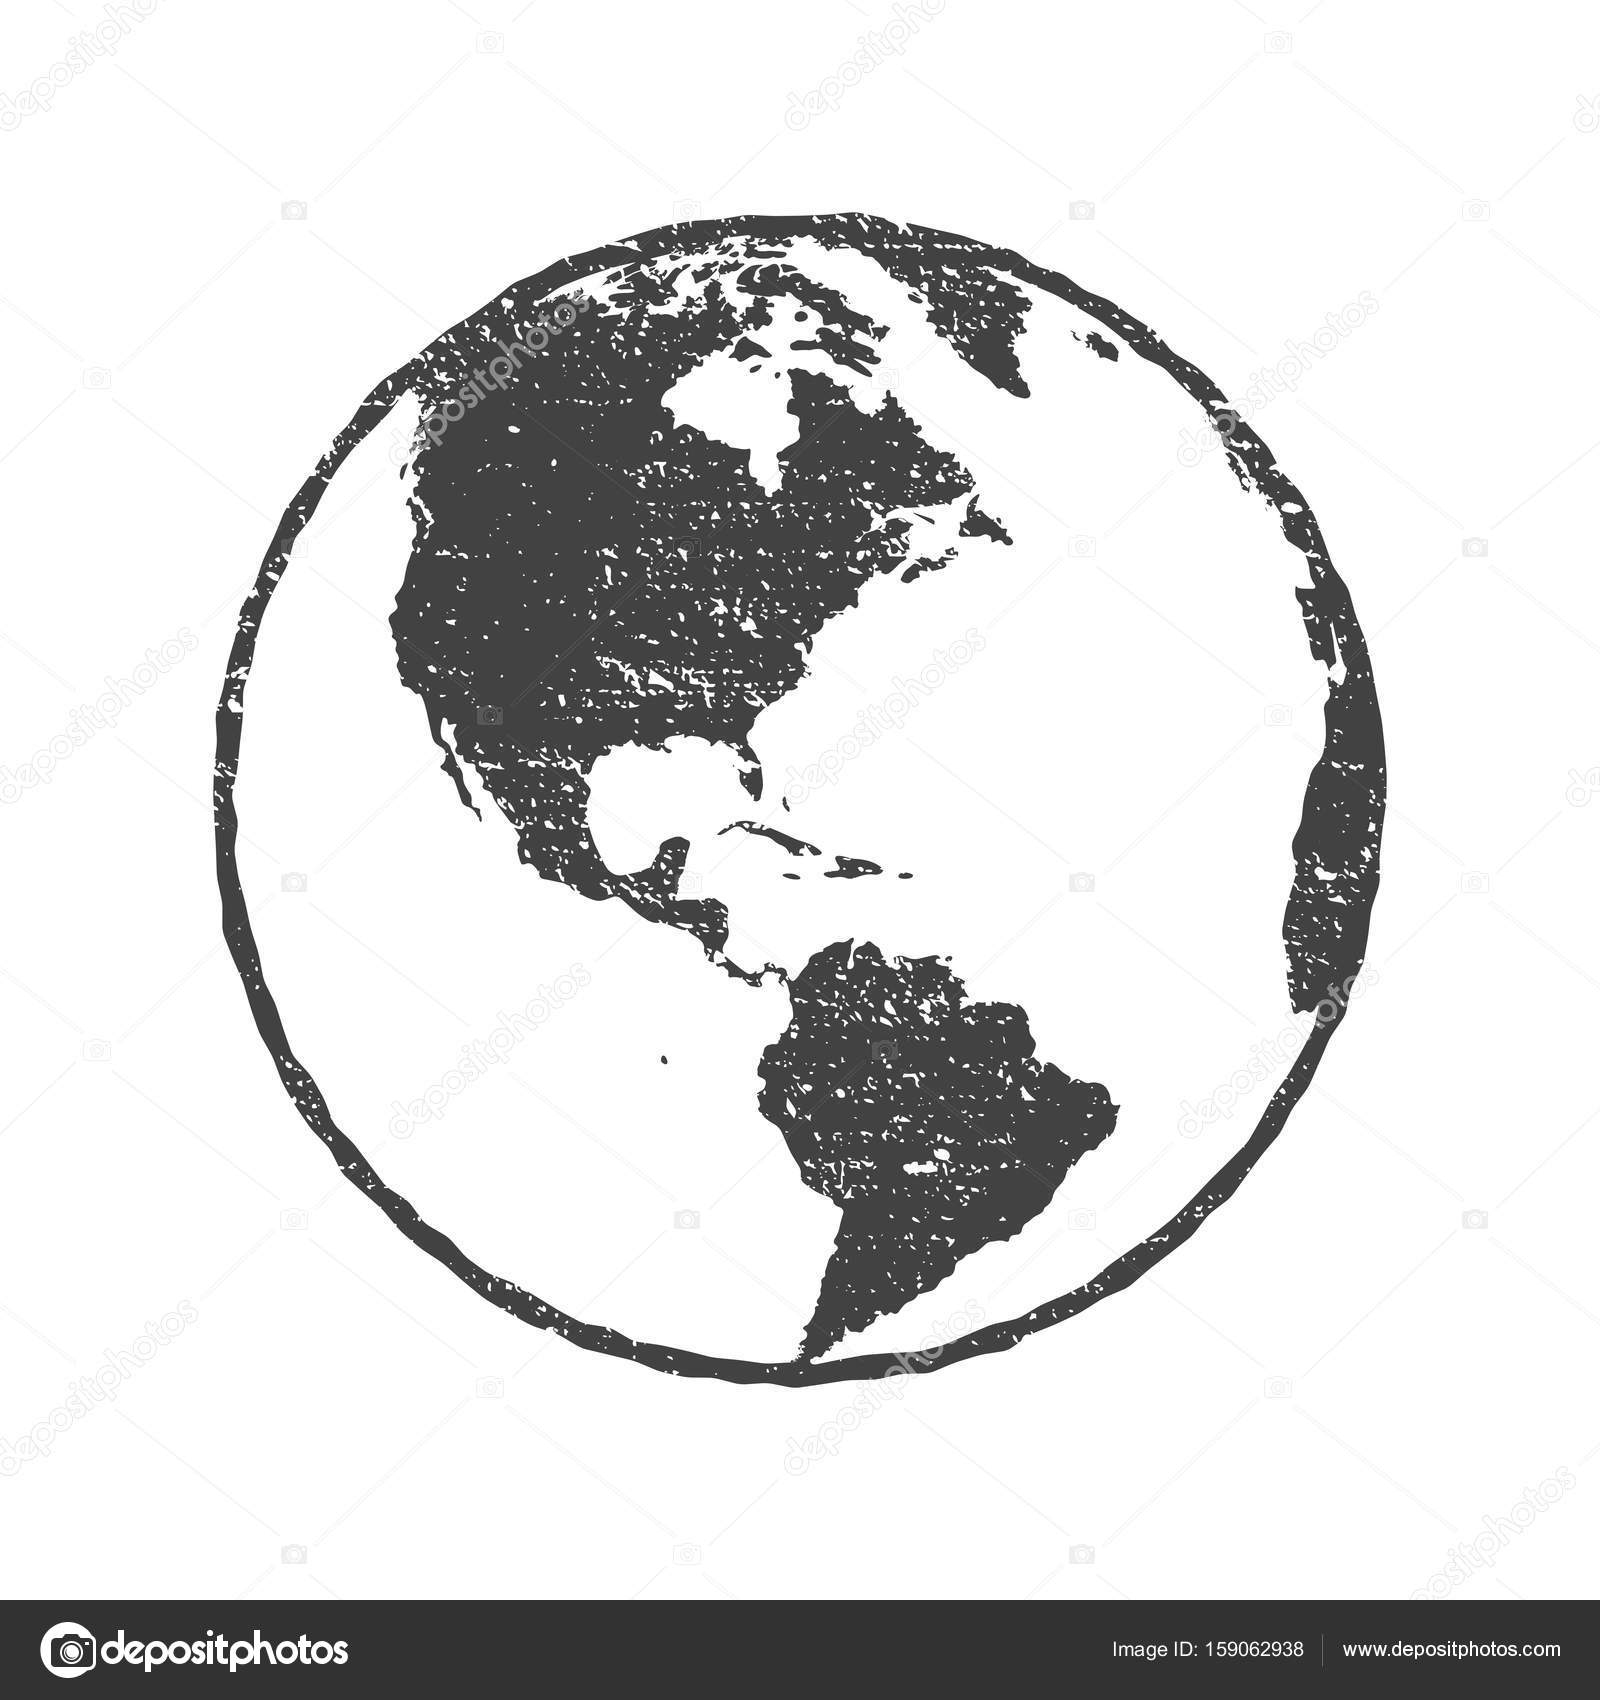 Grunge texture gray world map globe transparent vector illustration grunge texture gray world map globe transparent vector illustration stock vector gumiabroncs Images